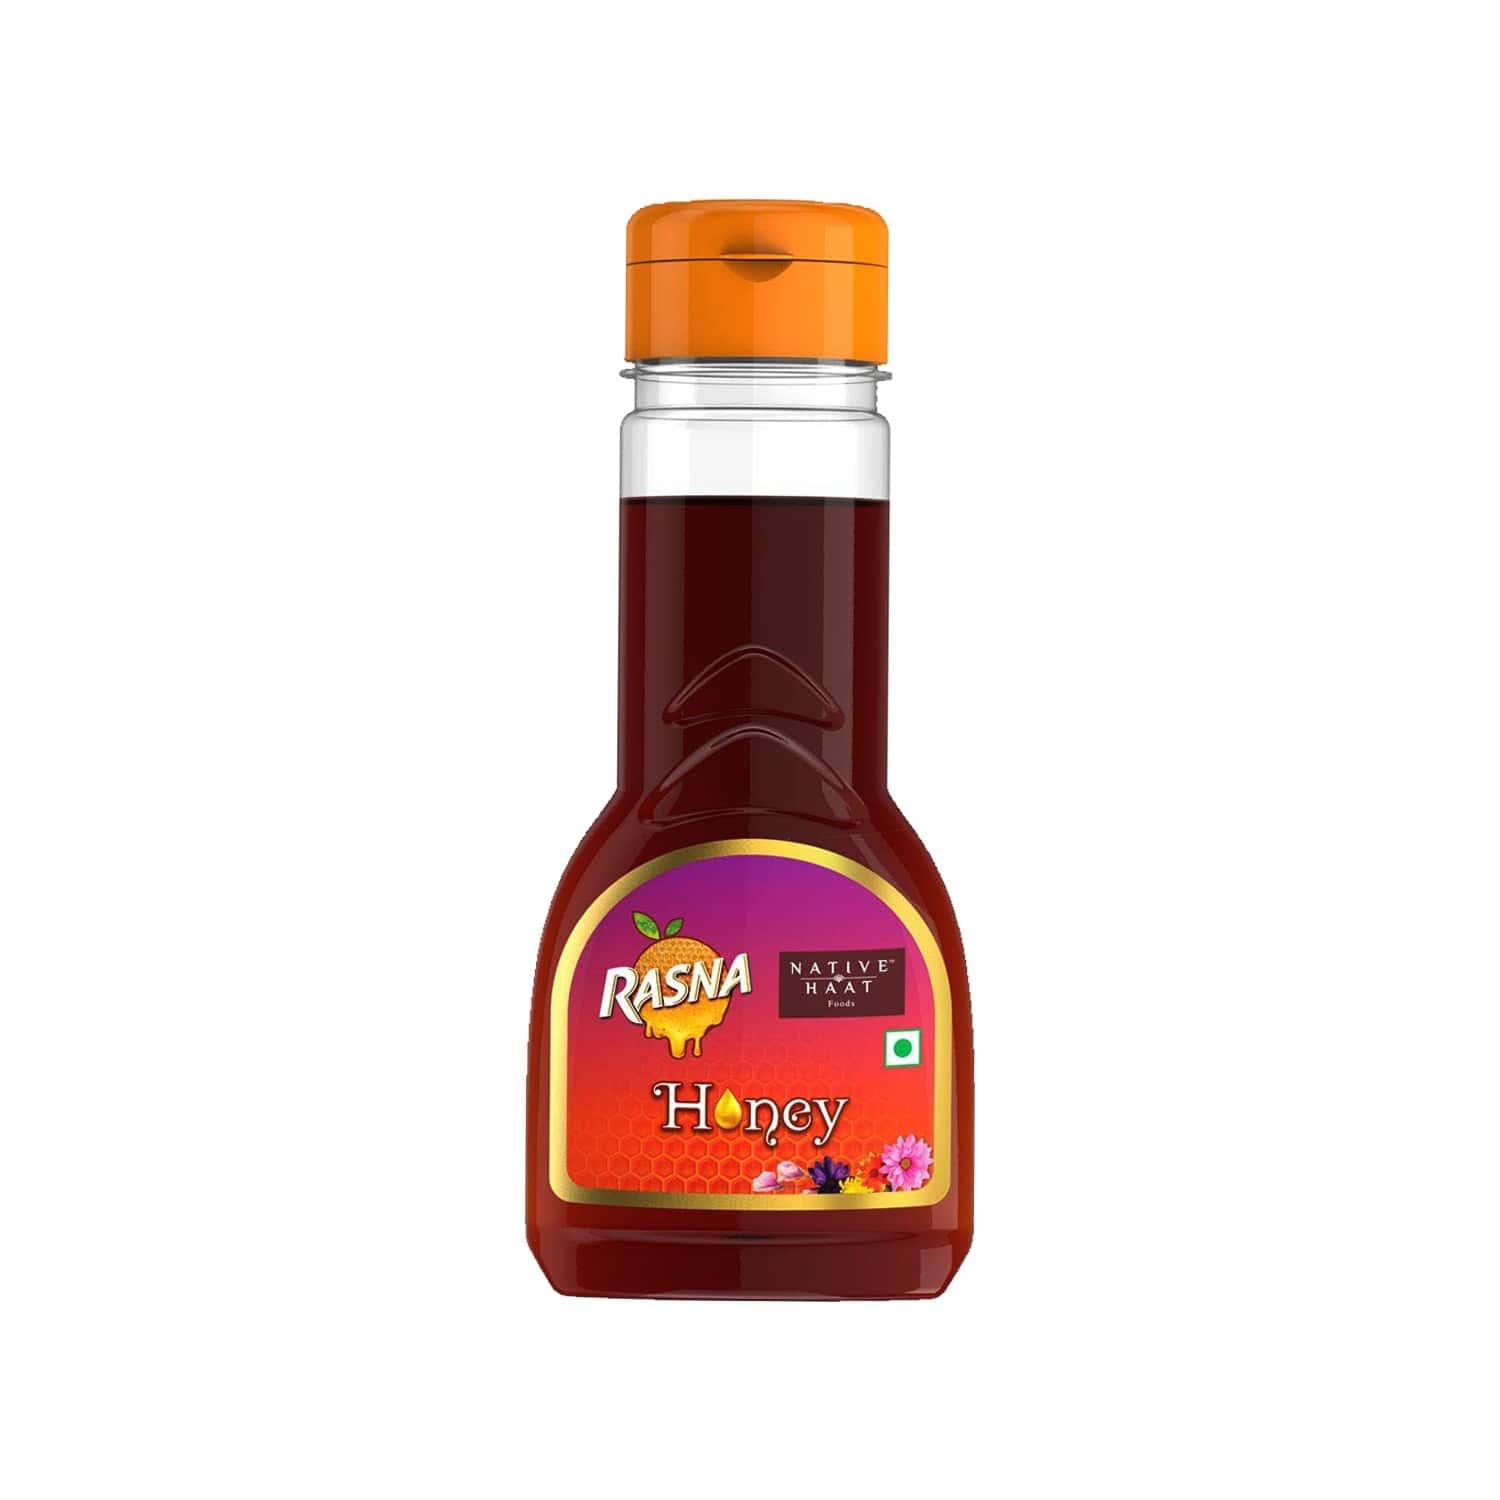 Rasna Native Haat Honey 250g